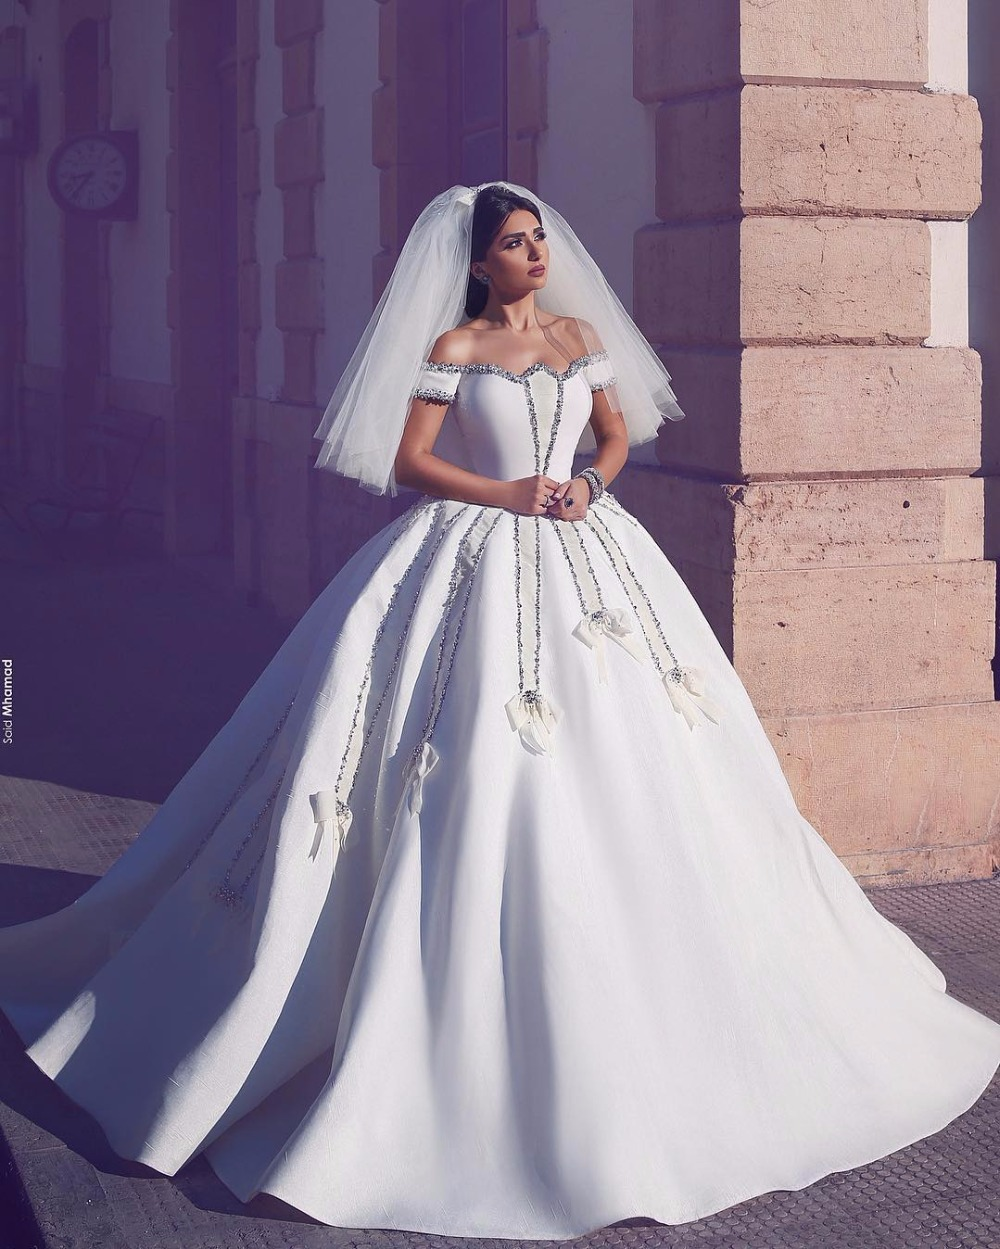 2017 Luxury Vintage Off Shoulder Wedding Dresses Ball Gown Royal Train Princess Long White Beaded Bridal Gowns Robe De Mariage In From